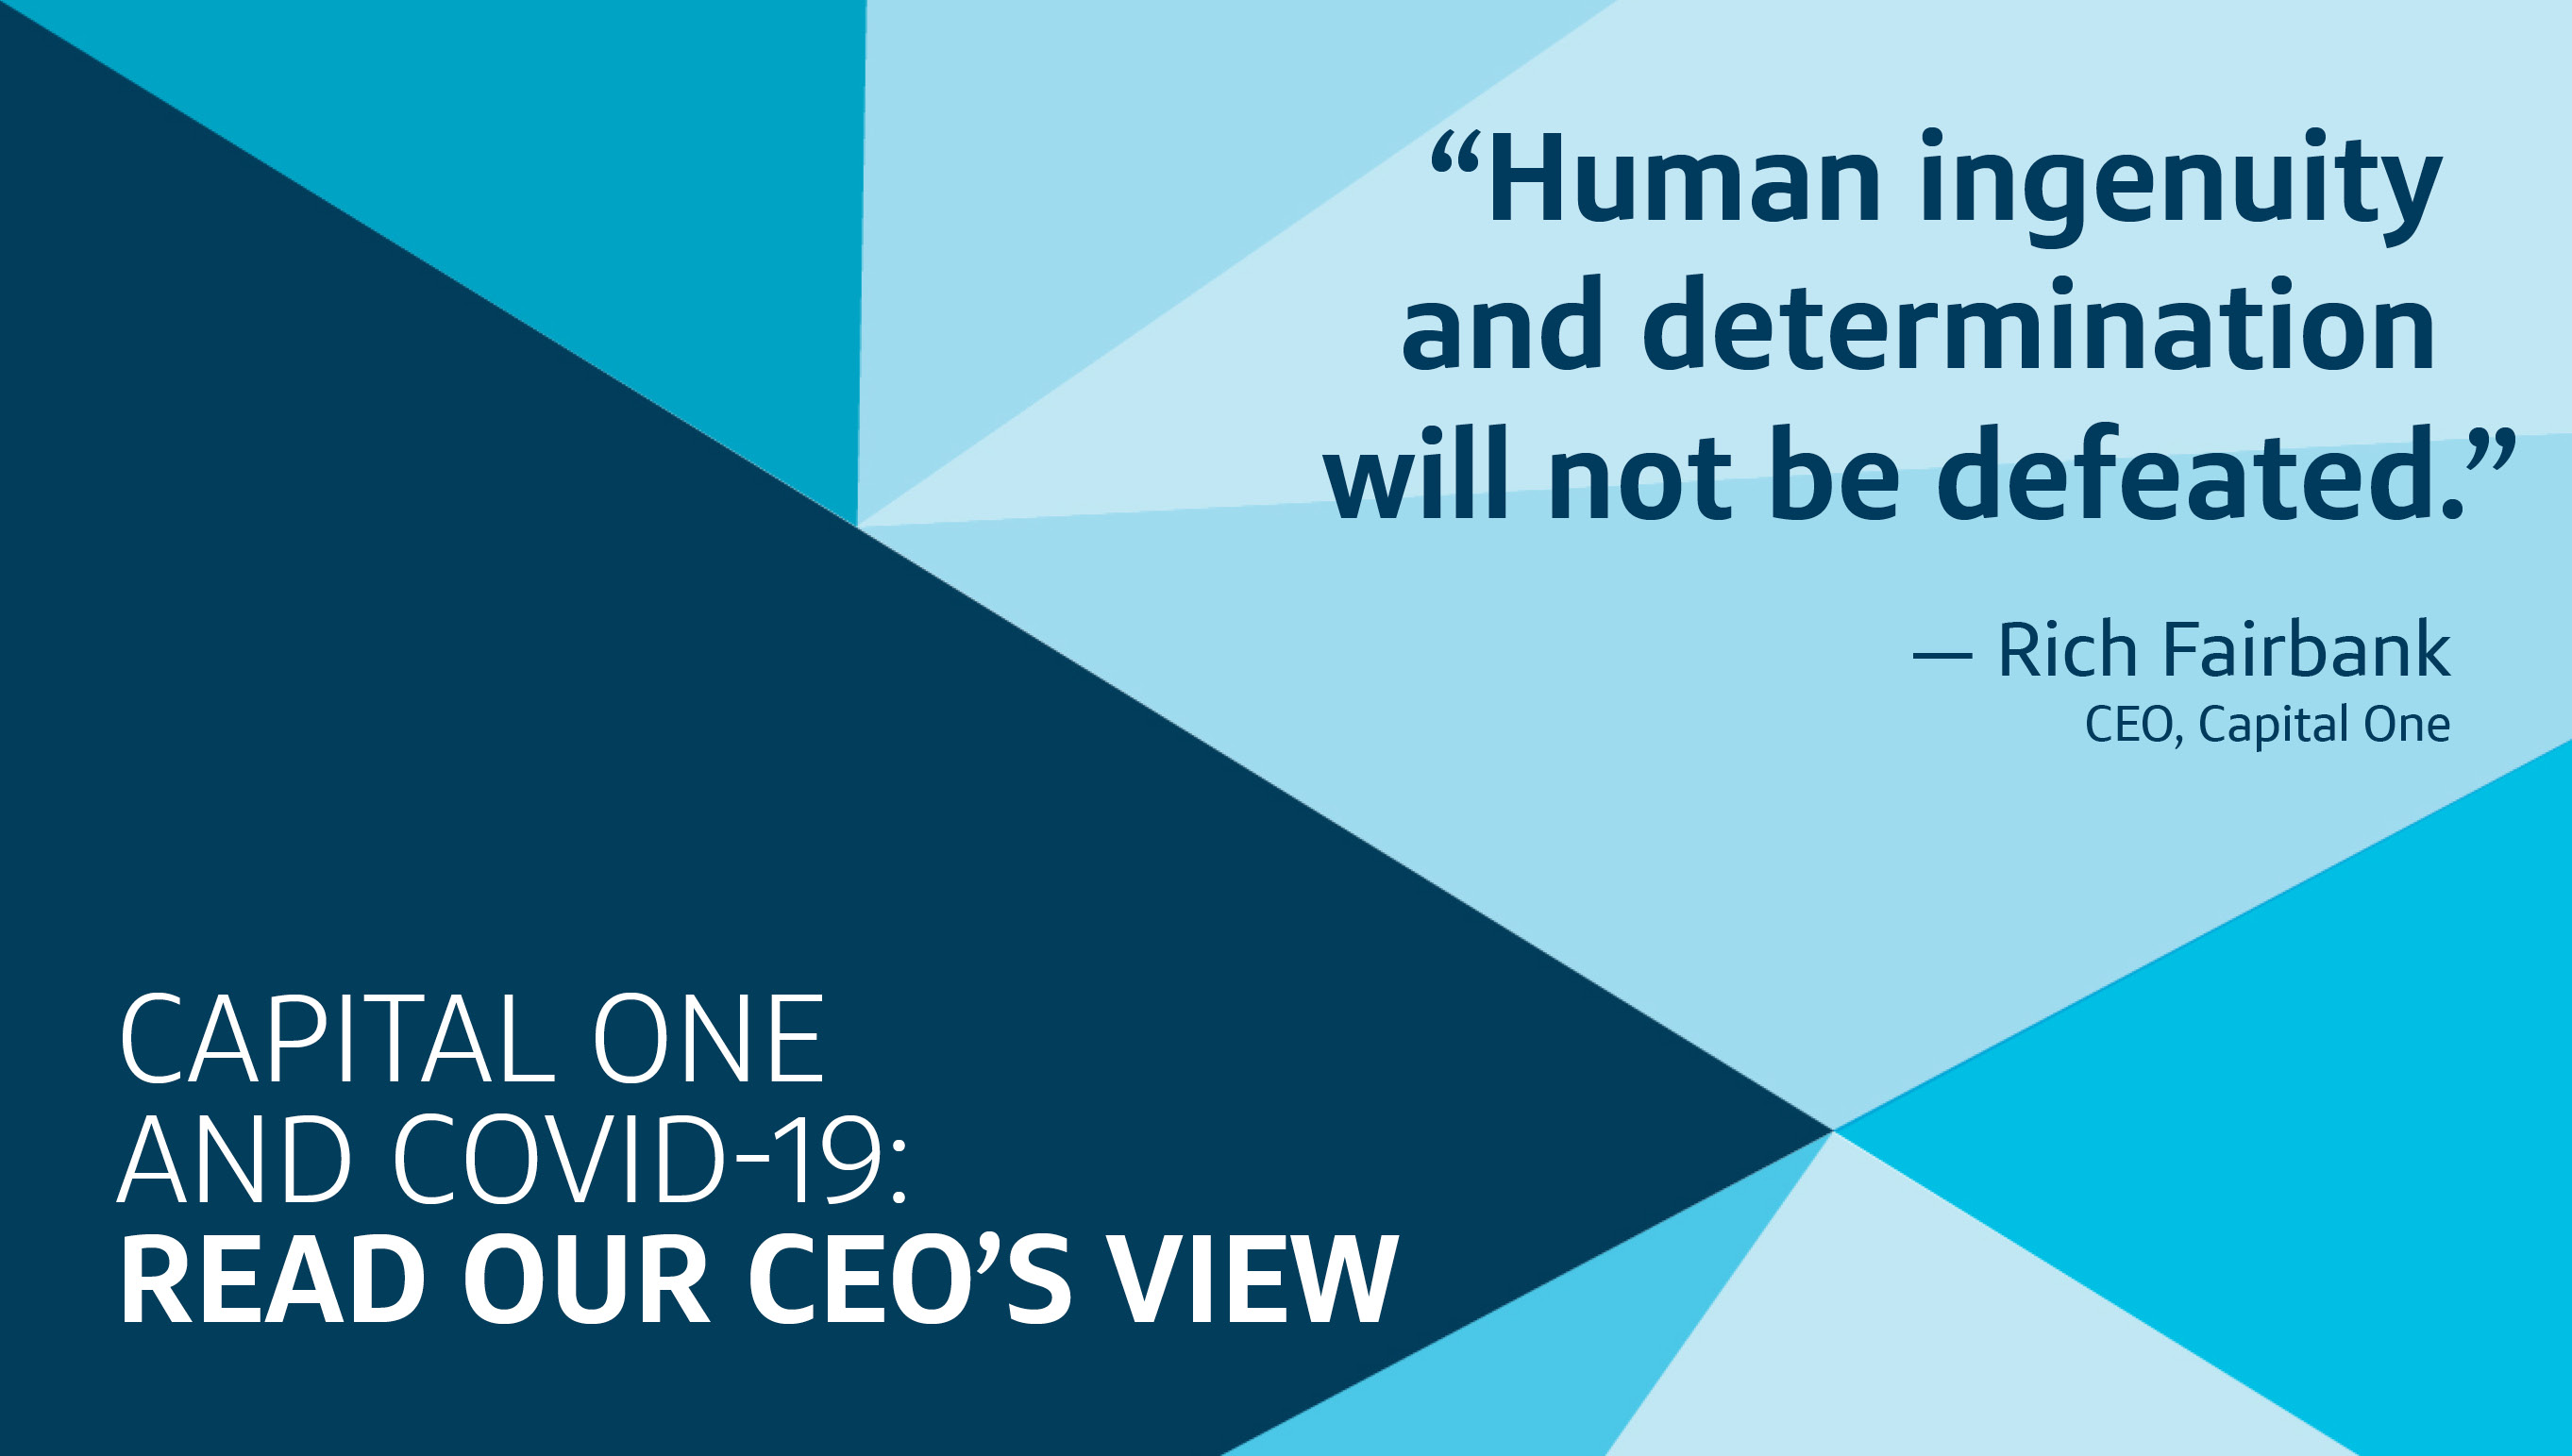 Capital One and Covid-19: Read our CEO's View